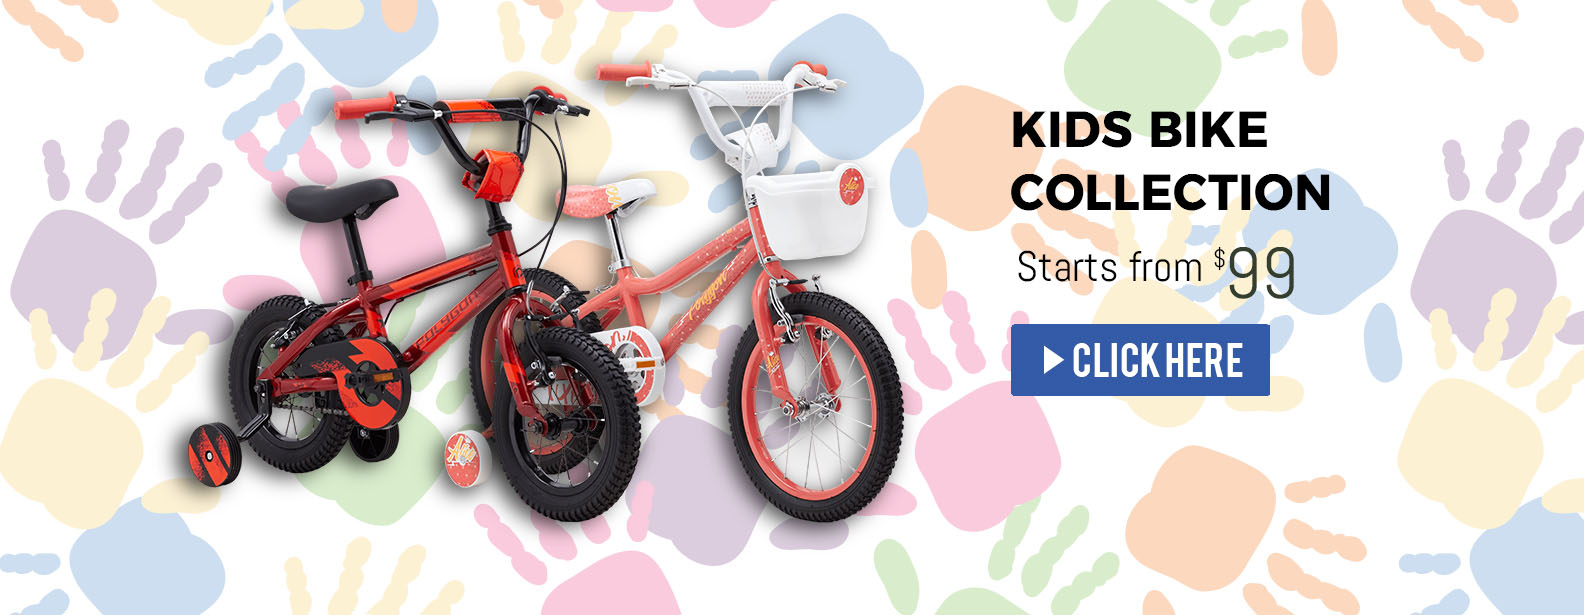 Buy Kids Bike Collection